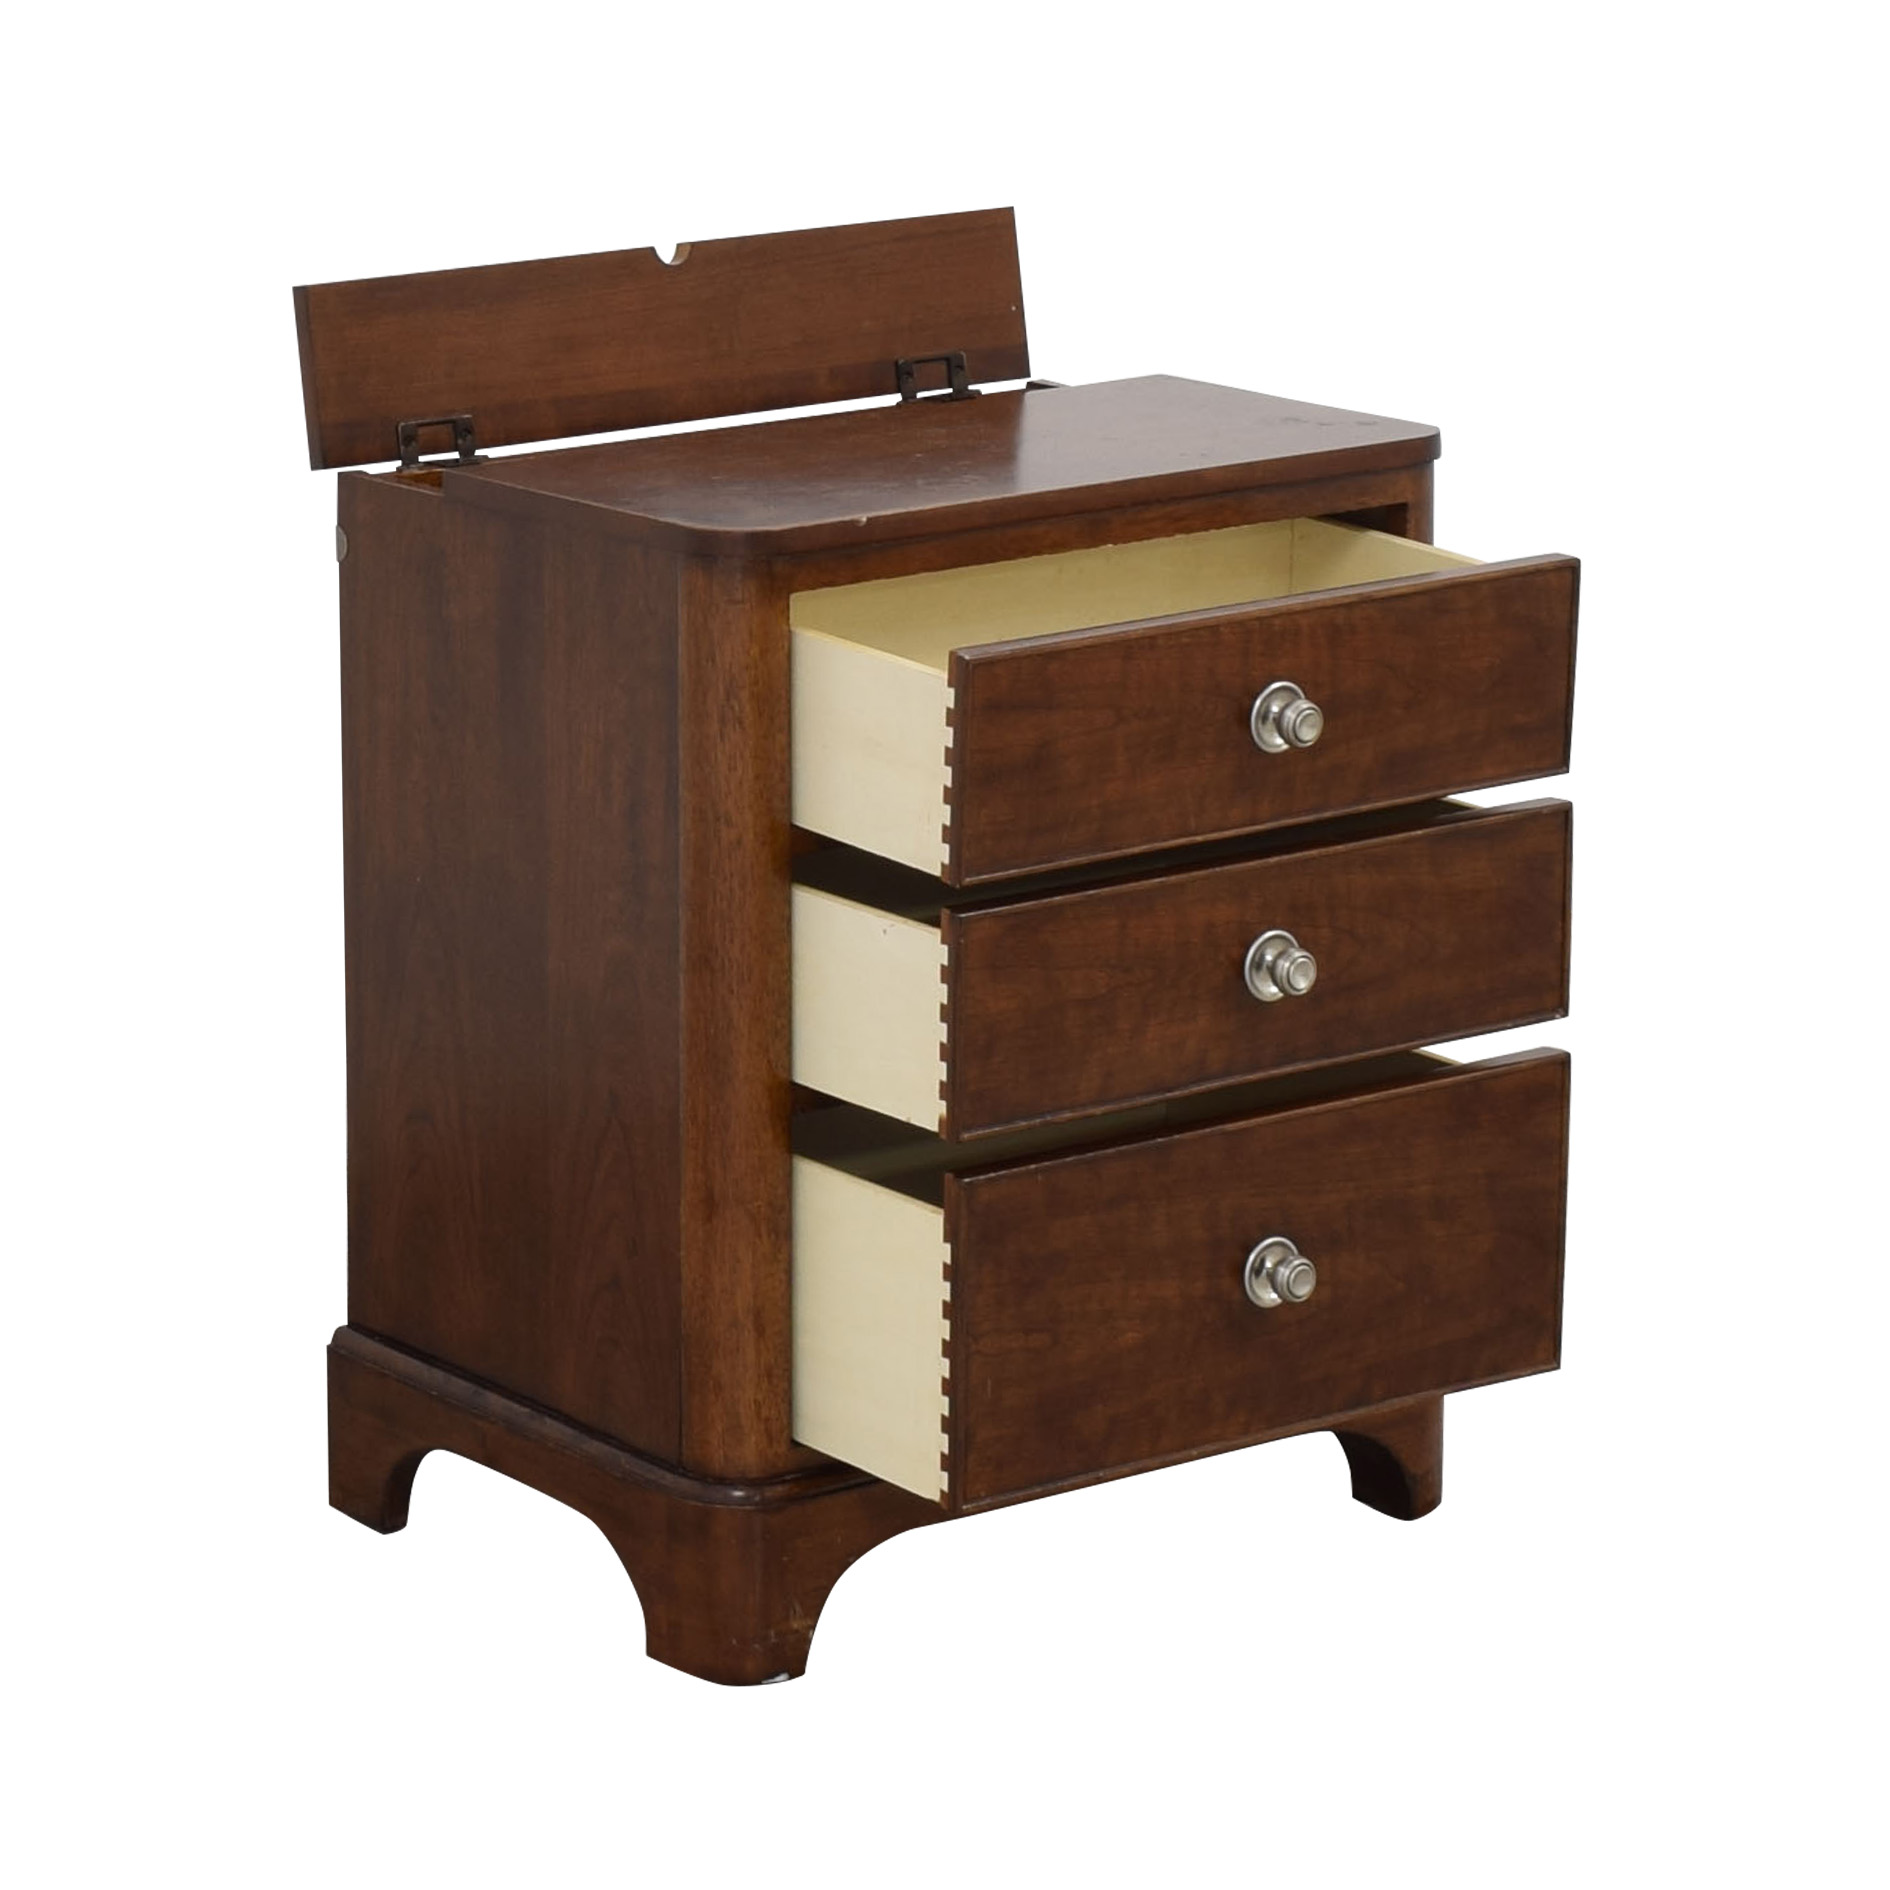 Bassett Furniture Bassett Three Drawer Nightstand dimensions